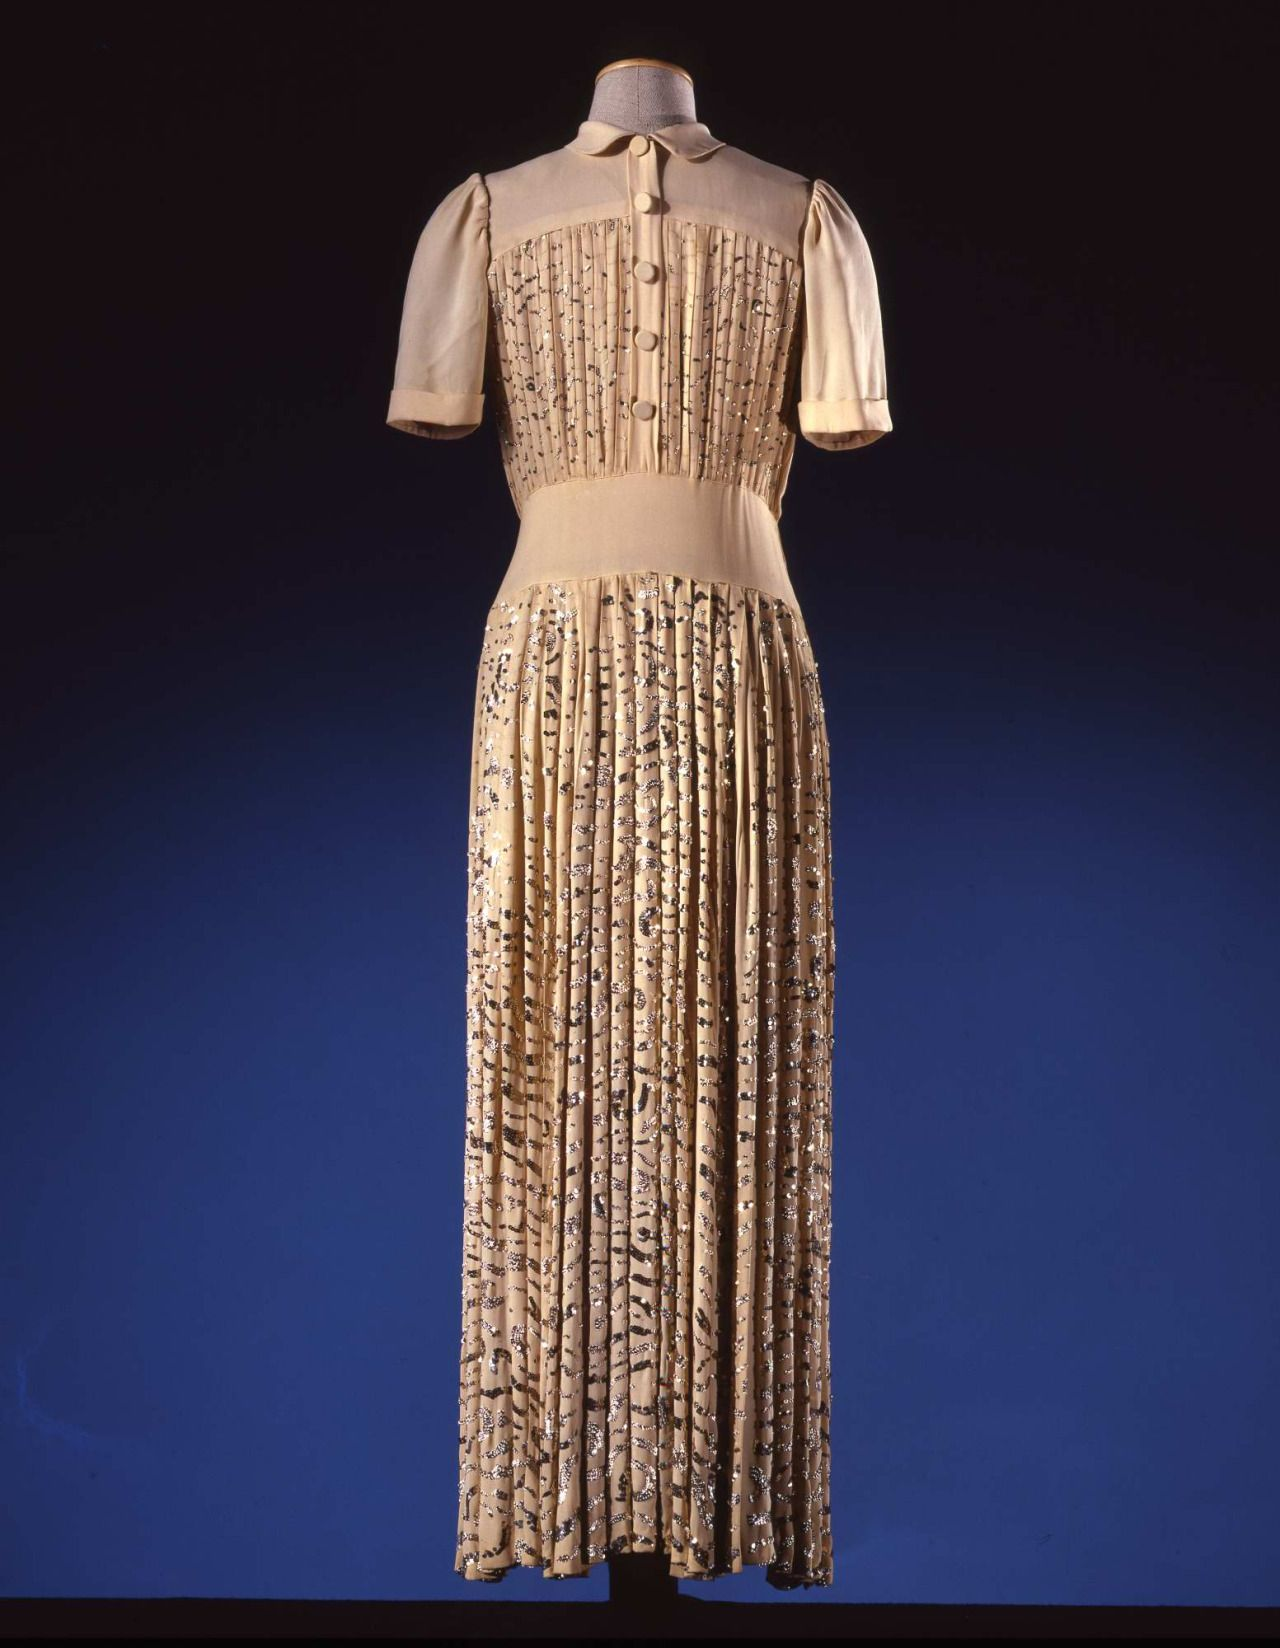 Dress in ivory silk crêpe embroidered with silver coloured paillettes; par Madeleine Vionnet (1876-1975), ca. 1945. Collection Galleria del Costume di Palazzo Pitti. All rights reserved. Photo: Gabinetto fotografico SBAS, Mario Carrieri.